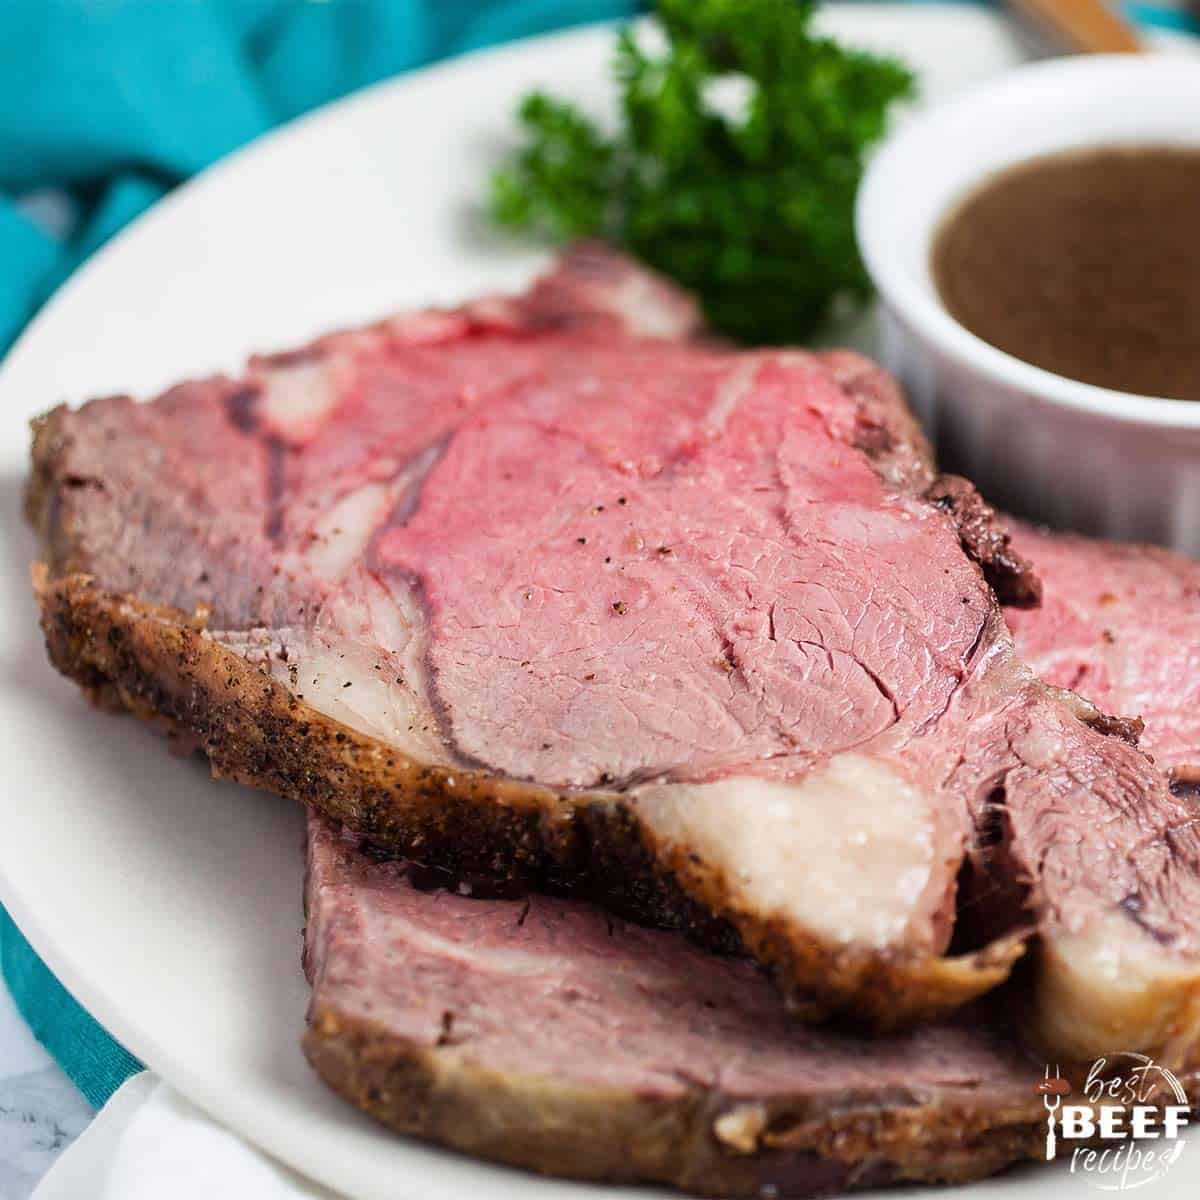 Two slices of boneless prime rib roast on a white plate